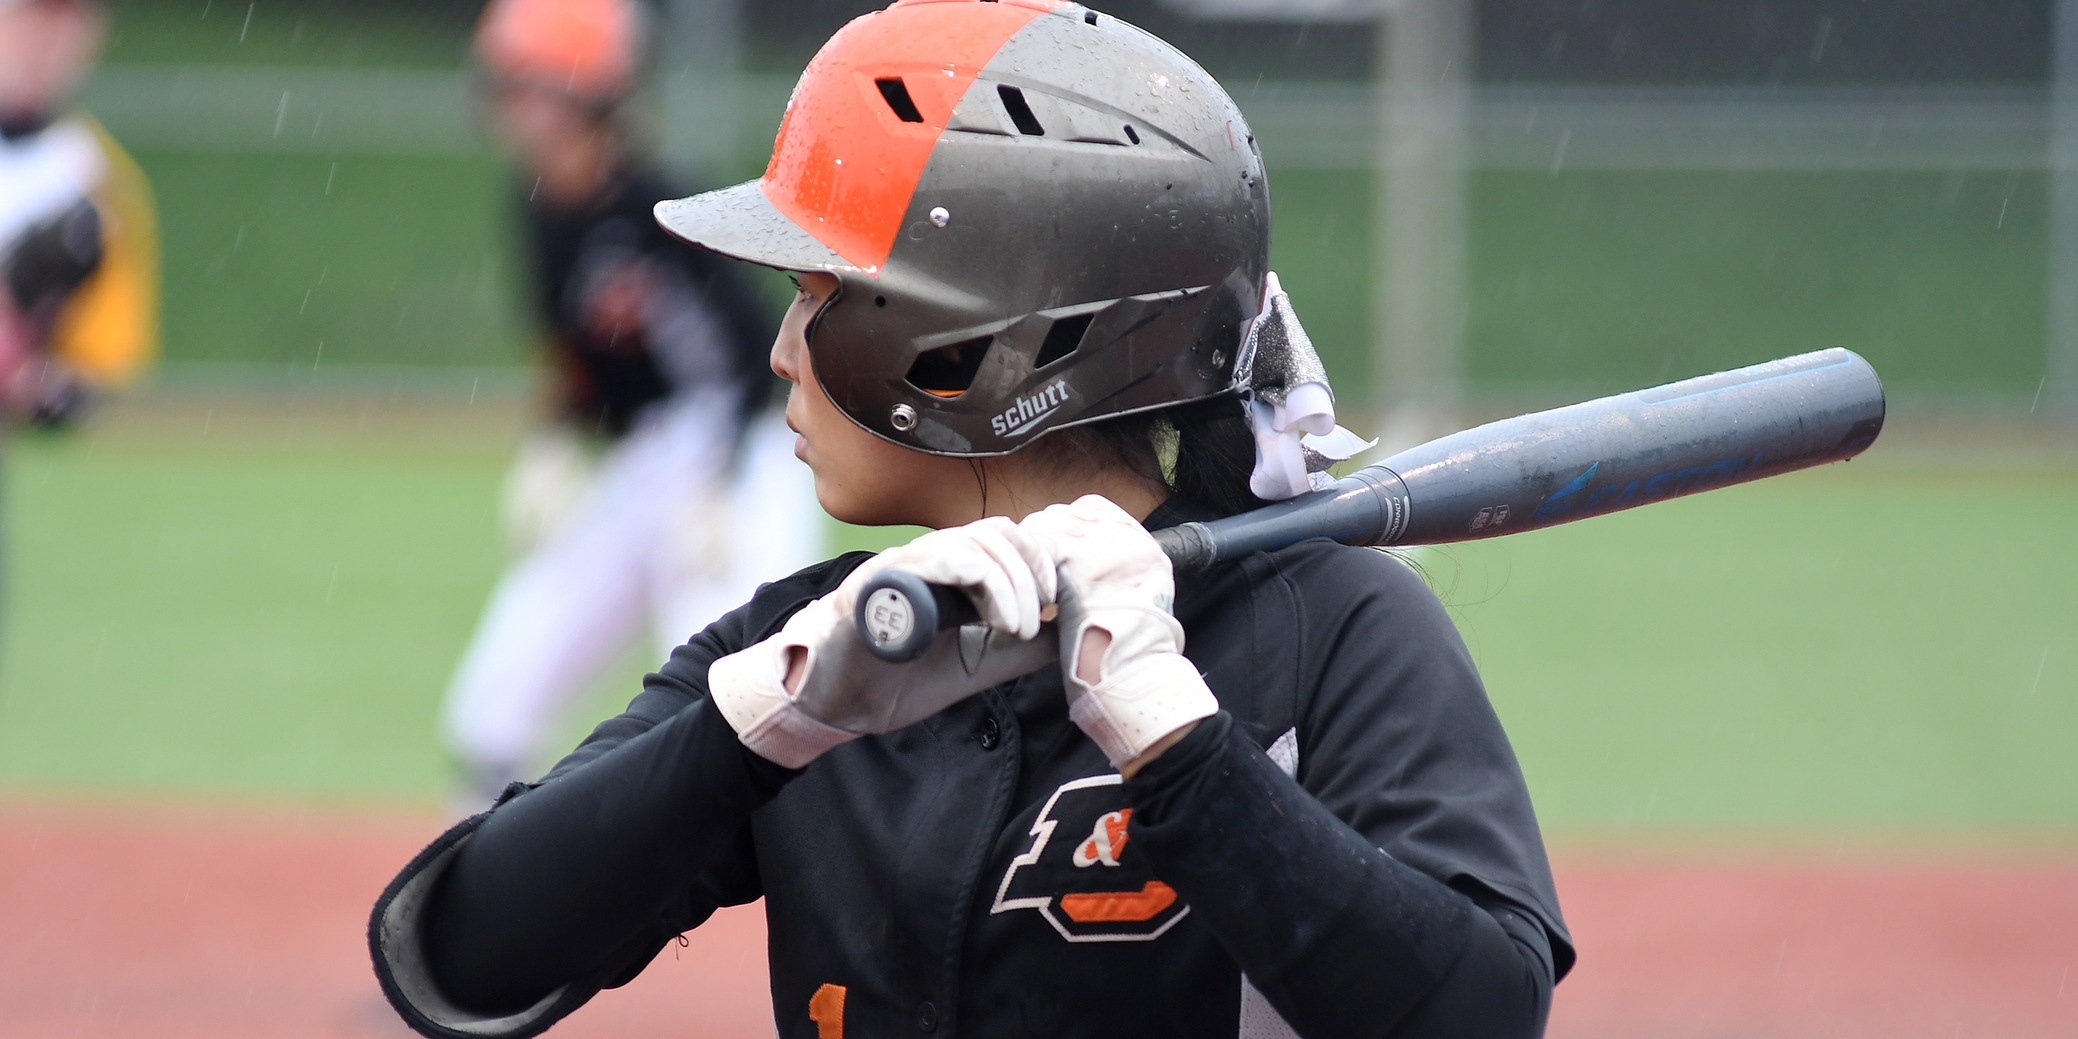 Lewis & Clark loses hard-fought, nine-inning season finale against nationally-ranked Wildcats